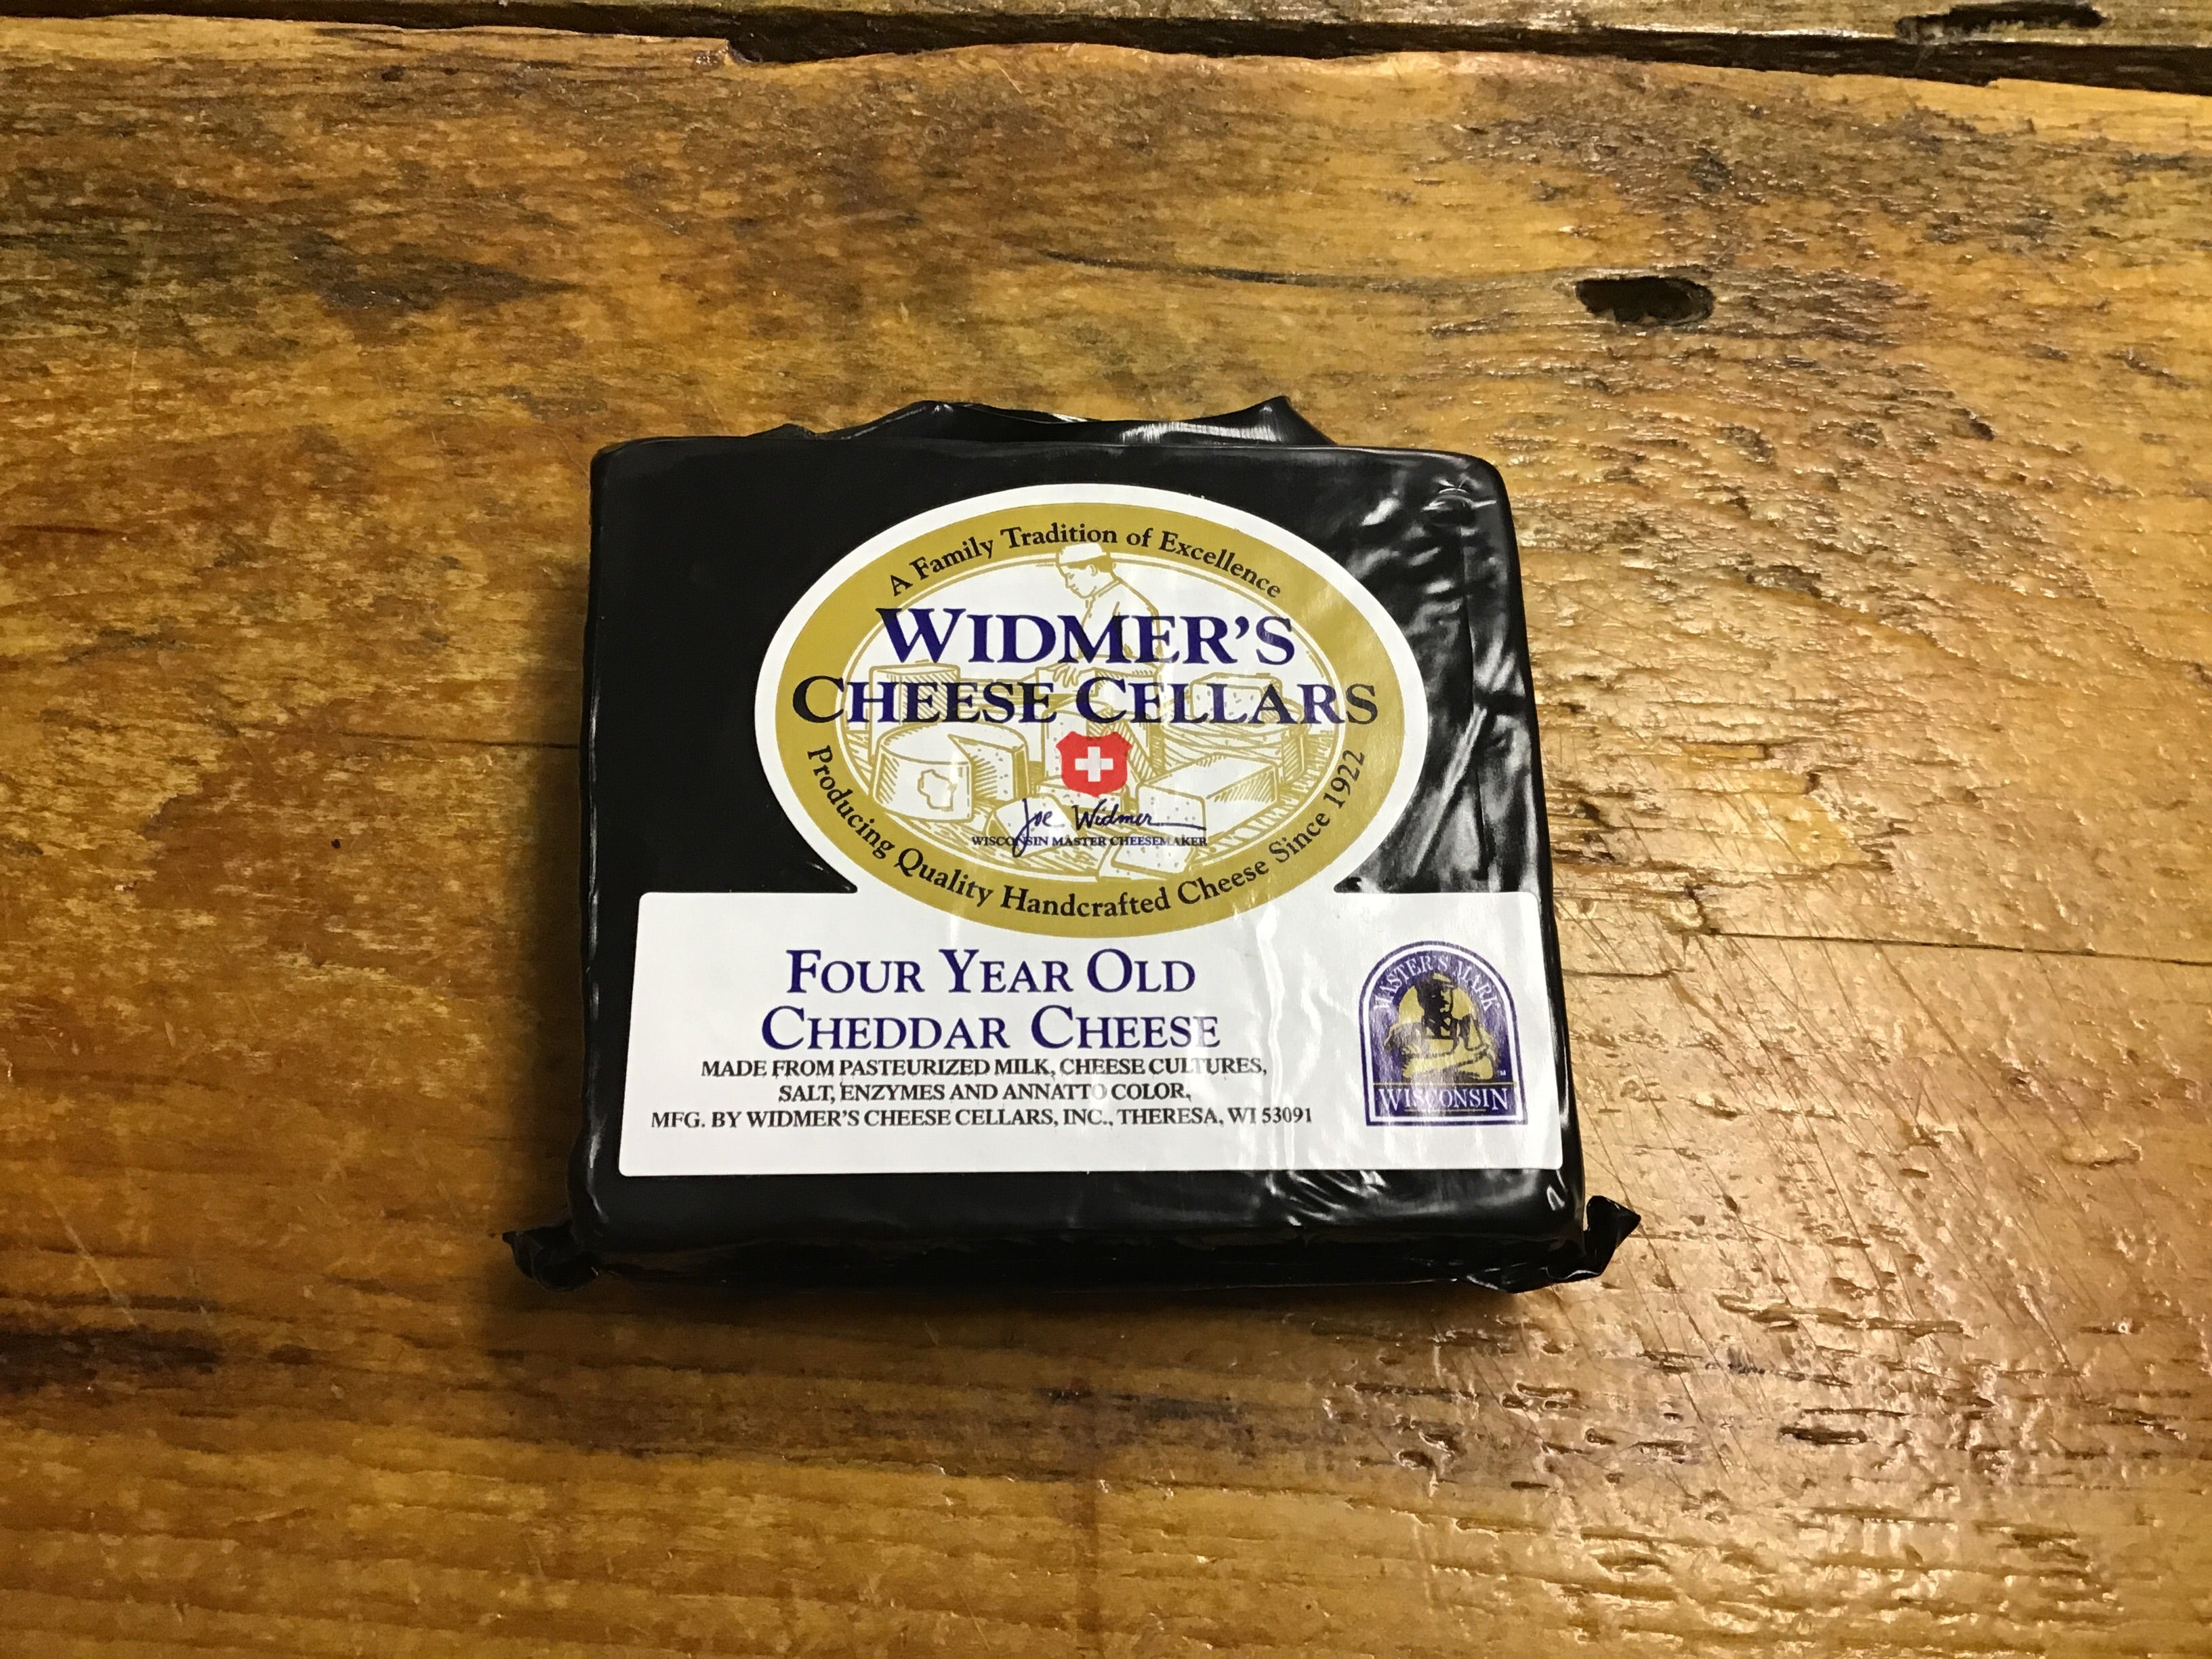 Four Year Old Cheddar Cheese